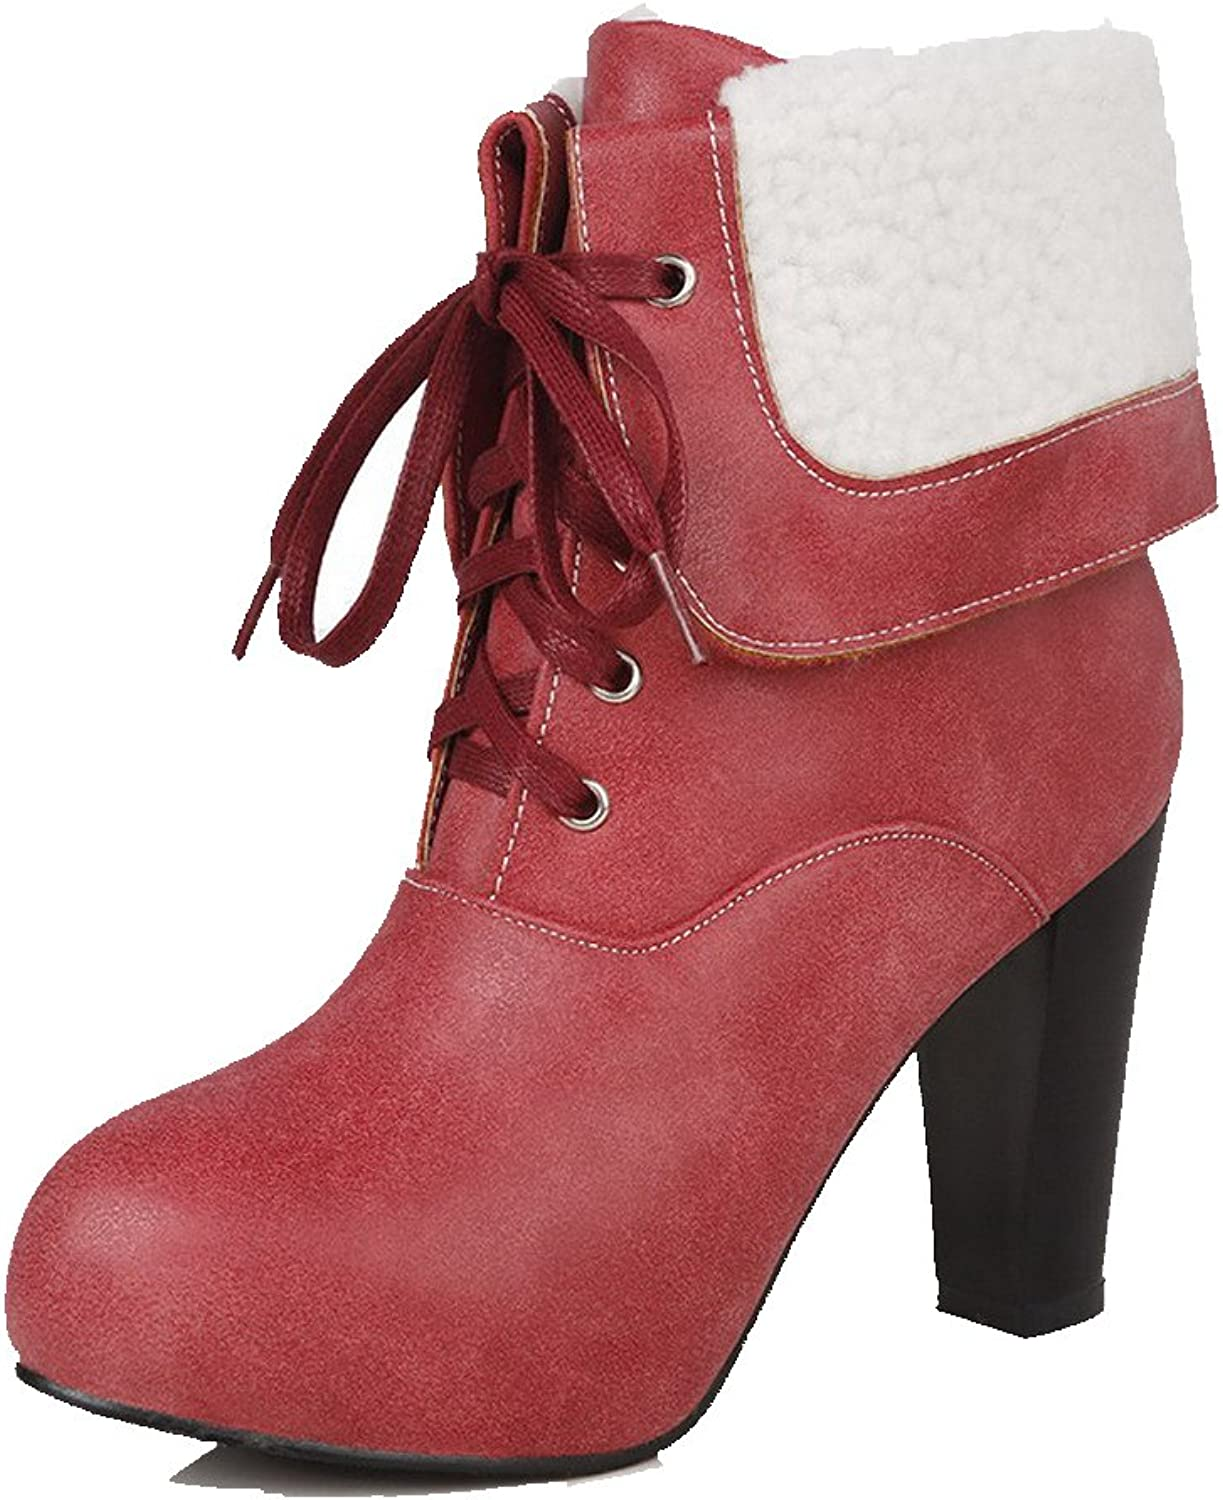 WeenFashion Women's Pu Solid Lace up Round Closed Toe High Heels Boots